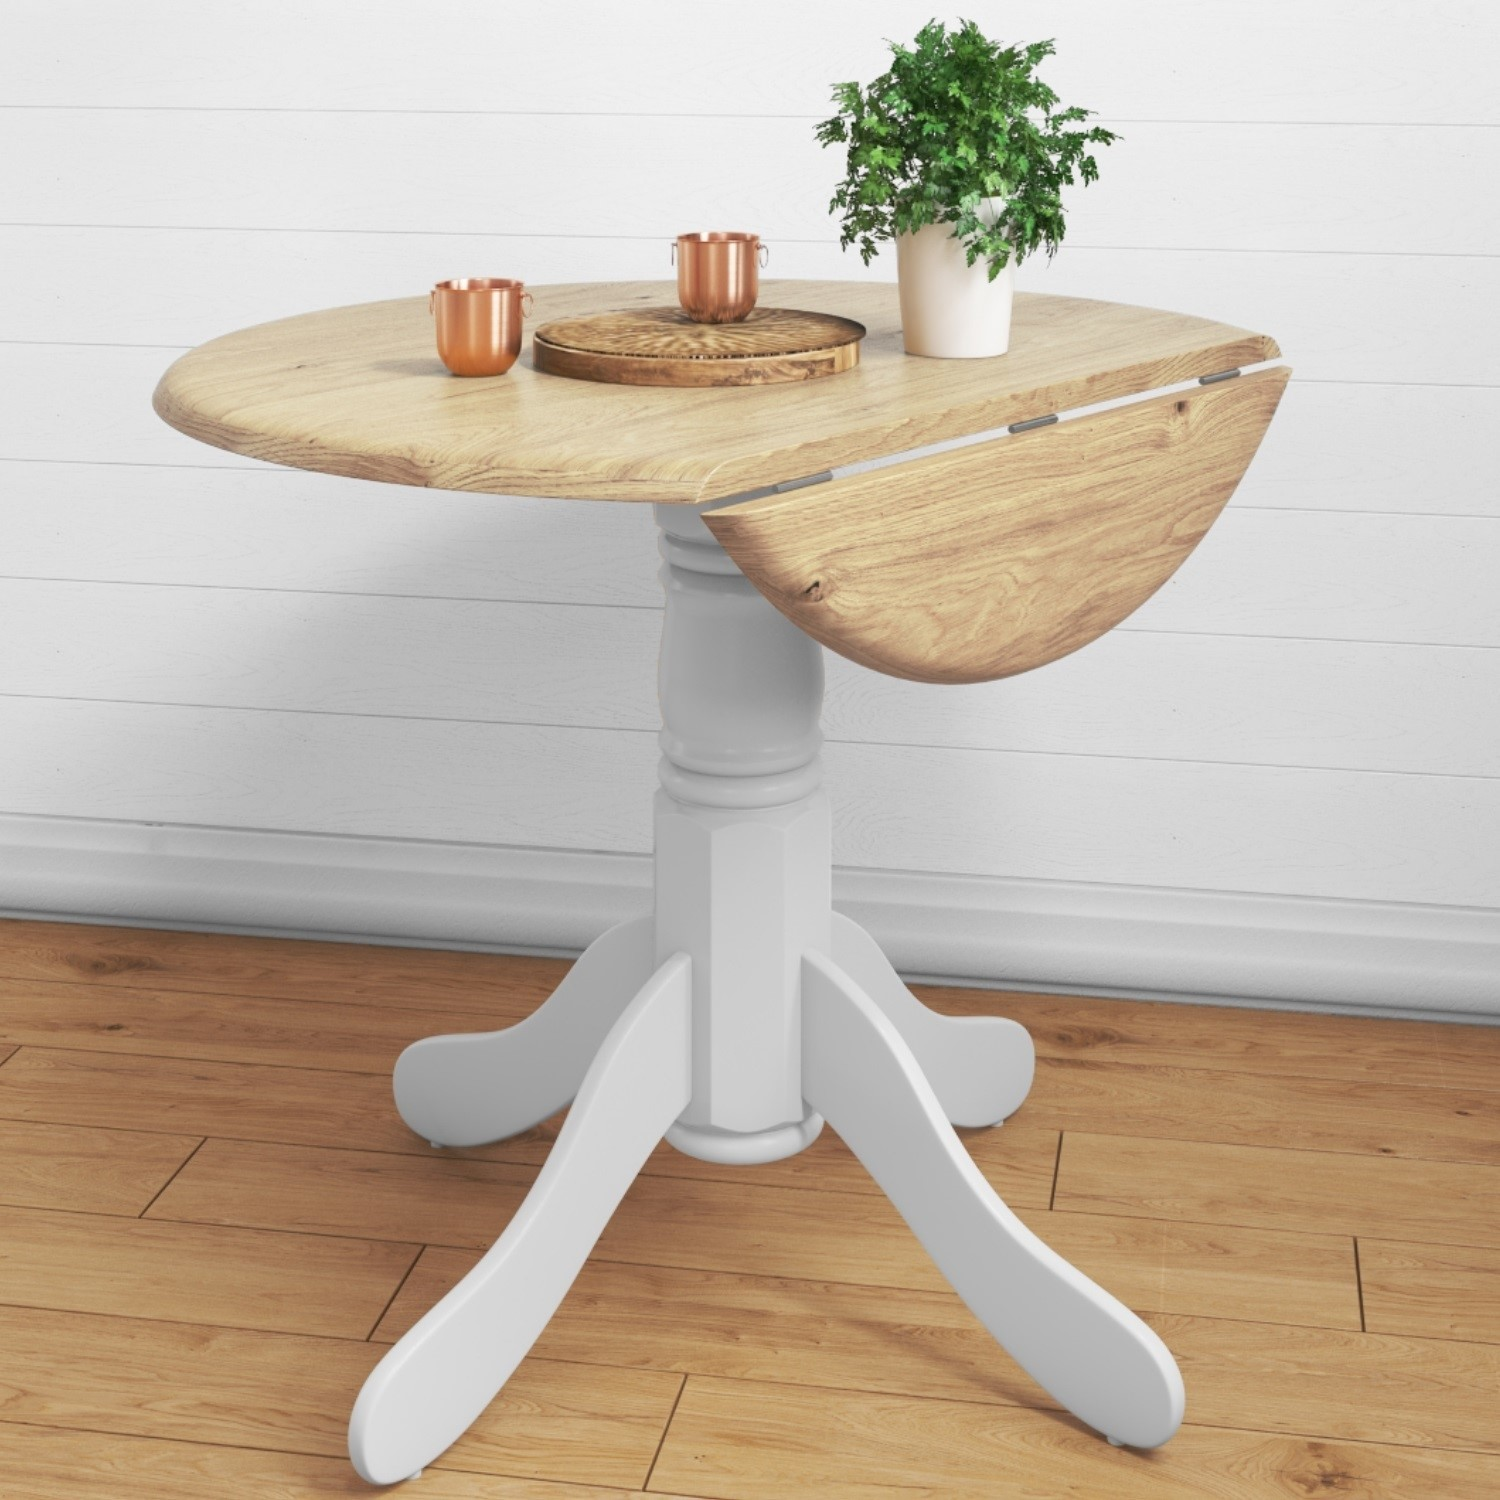 Outstanding Rhode Island Small Round Drop Leaf Table In Oak White Seats 4 Cjindustries Chair Design For Home Cjindustriesco